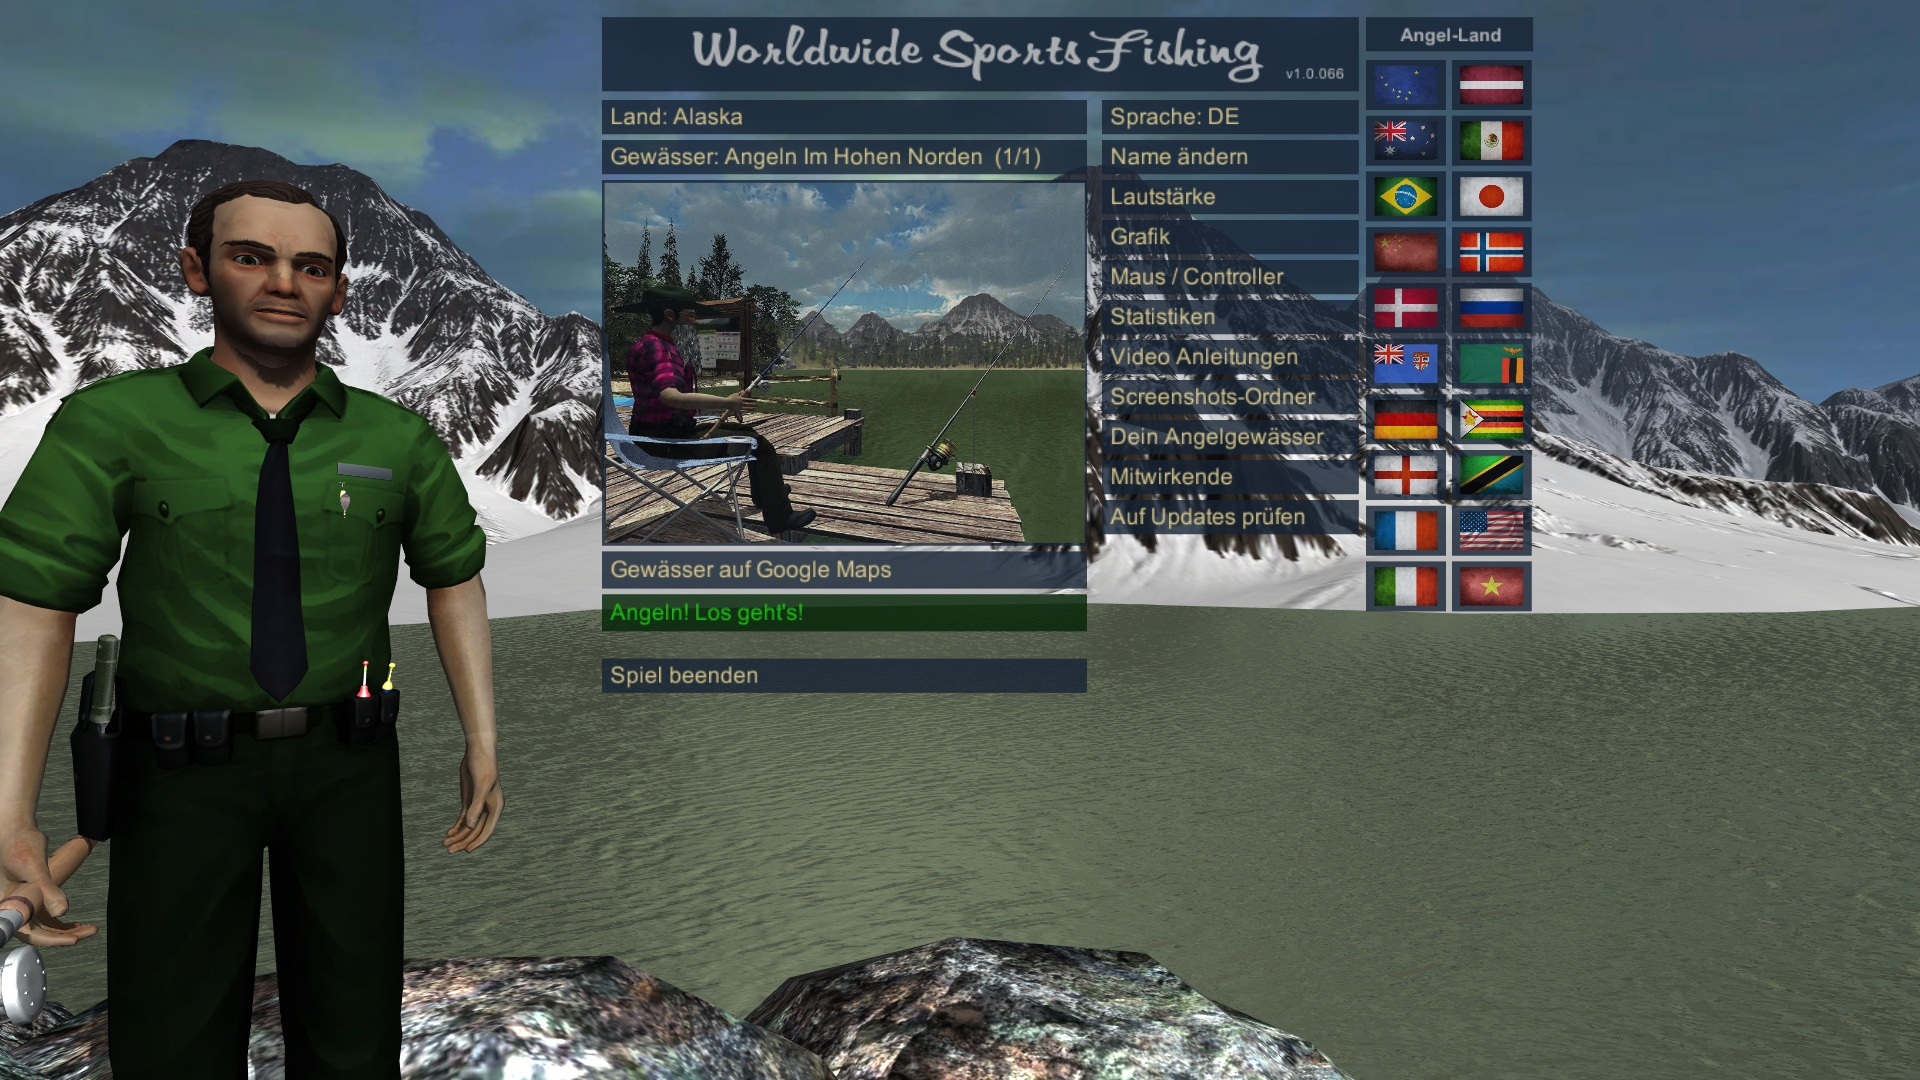 Worldwide Sports Fishing Screenshot 3